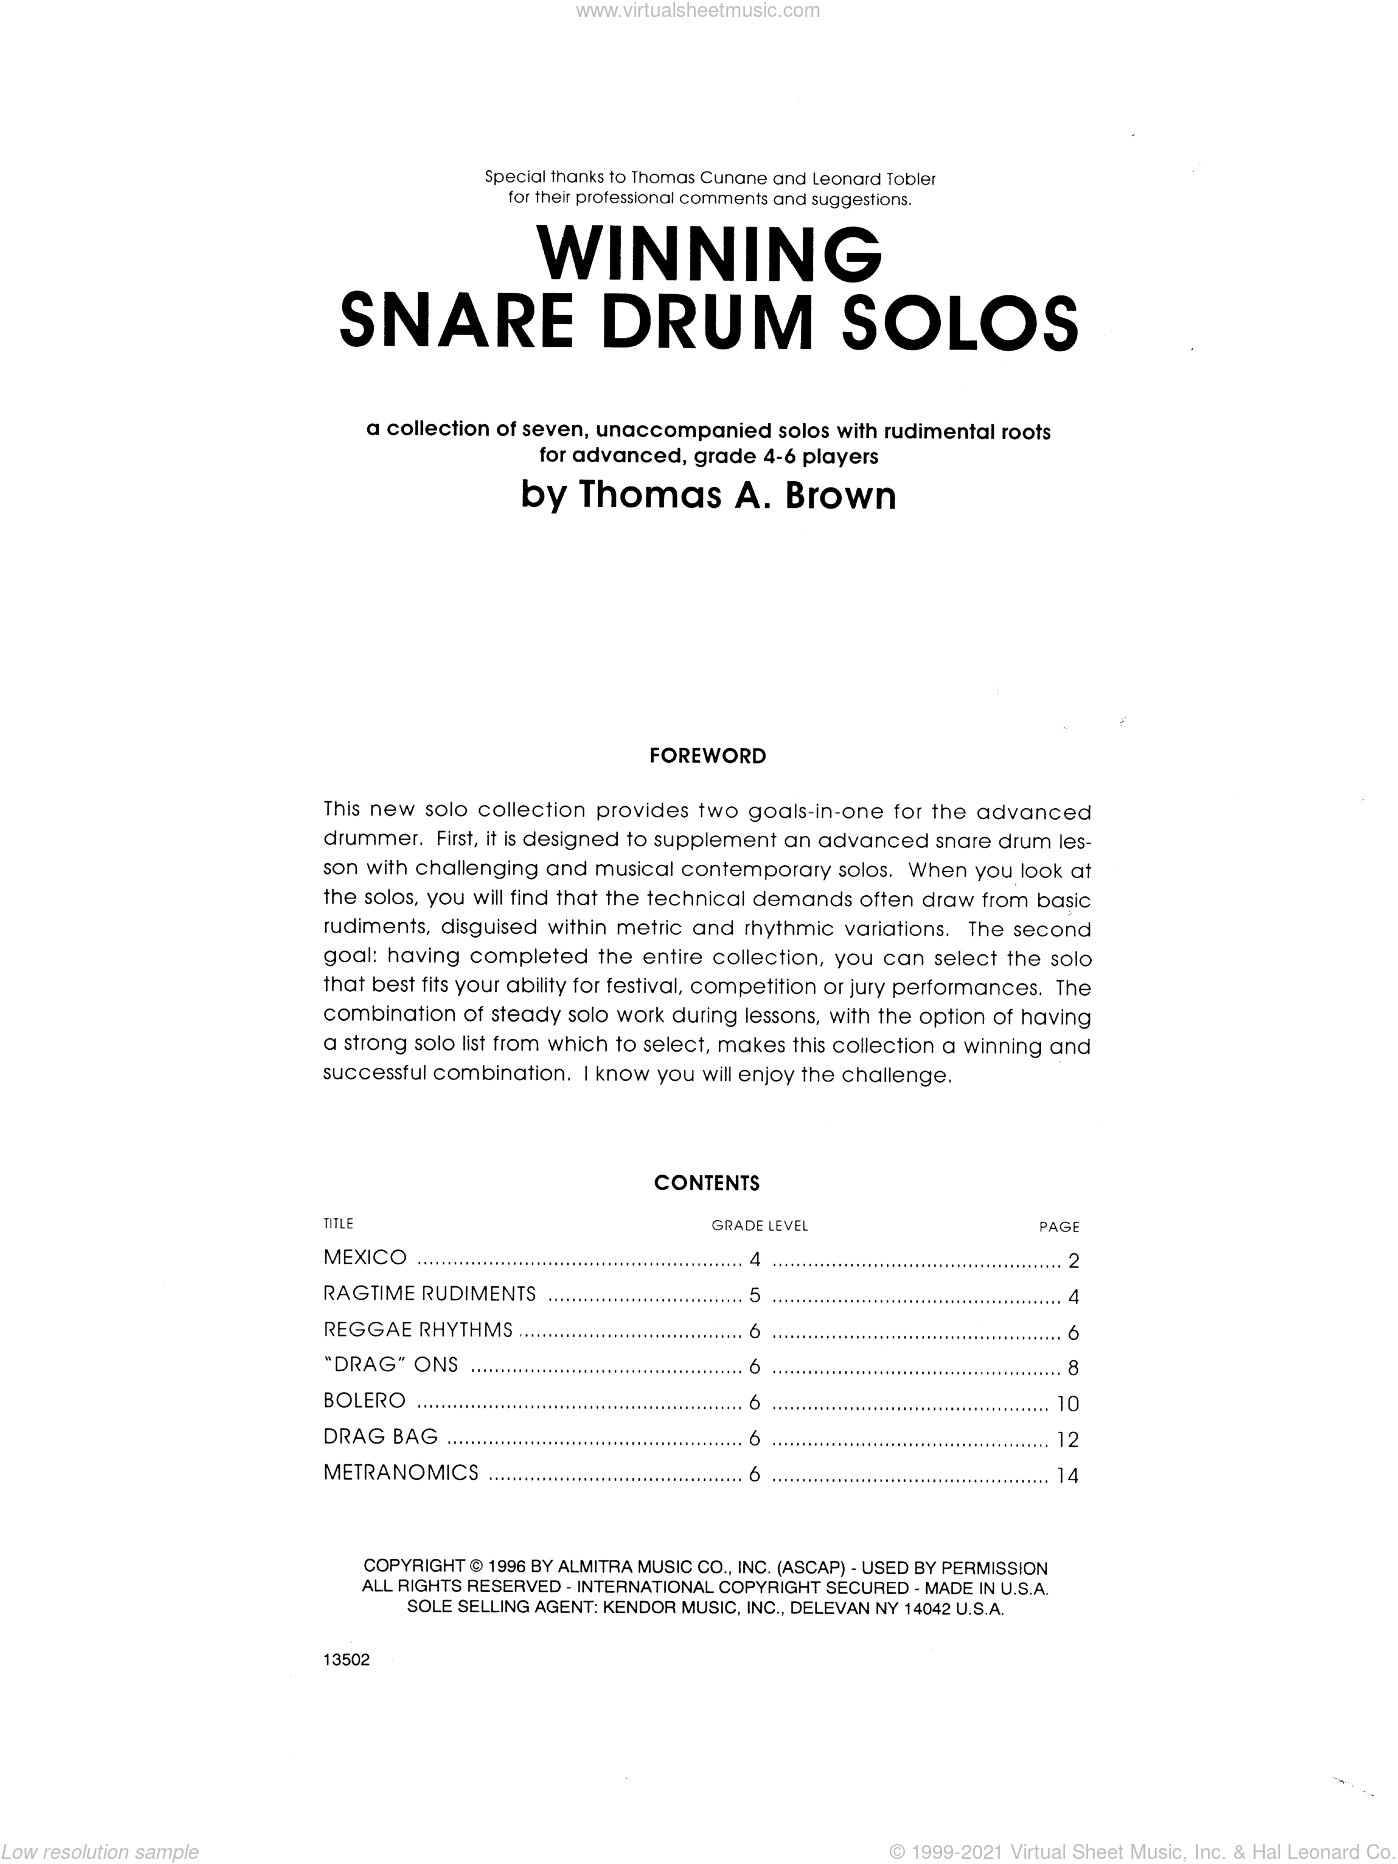 Winning Snare Drum Solos sheet music for percussions by Tom Brown. Score Image Preview.